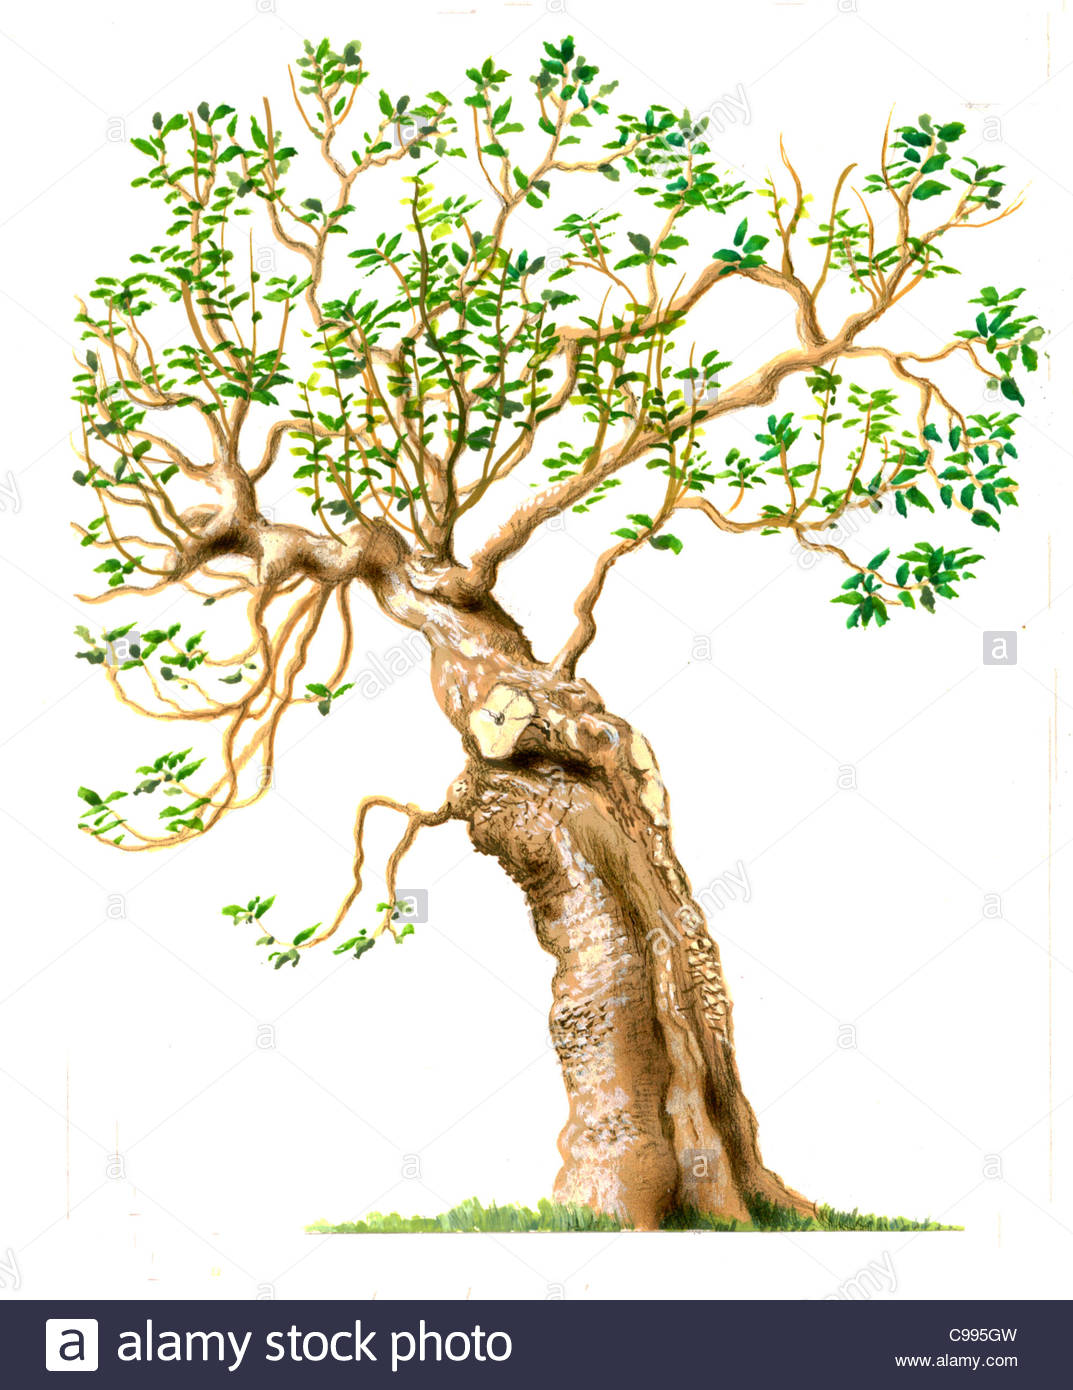 Fig Tree Series Baume Stock Photo, Royalty Free Image: 40154601.